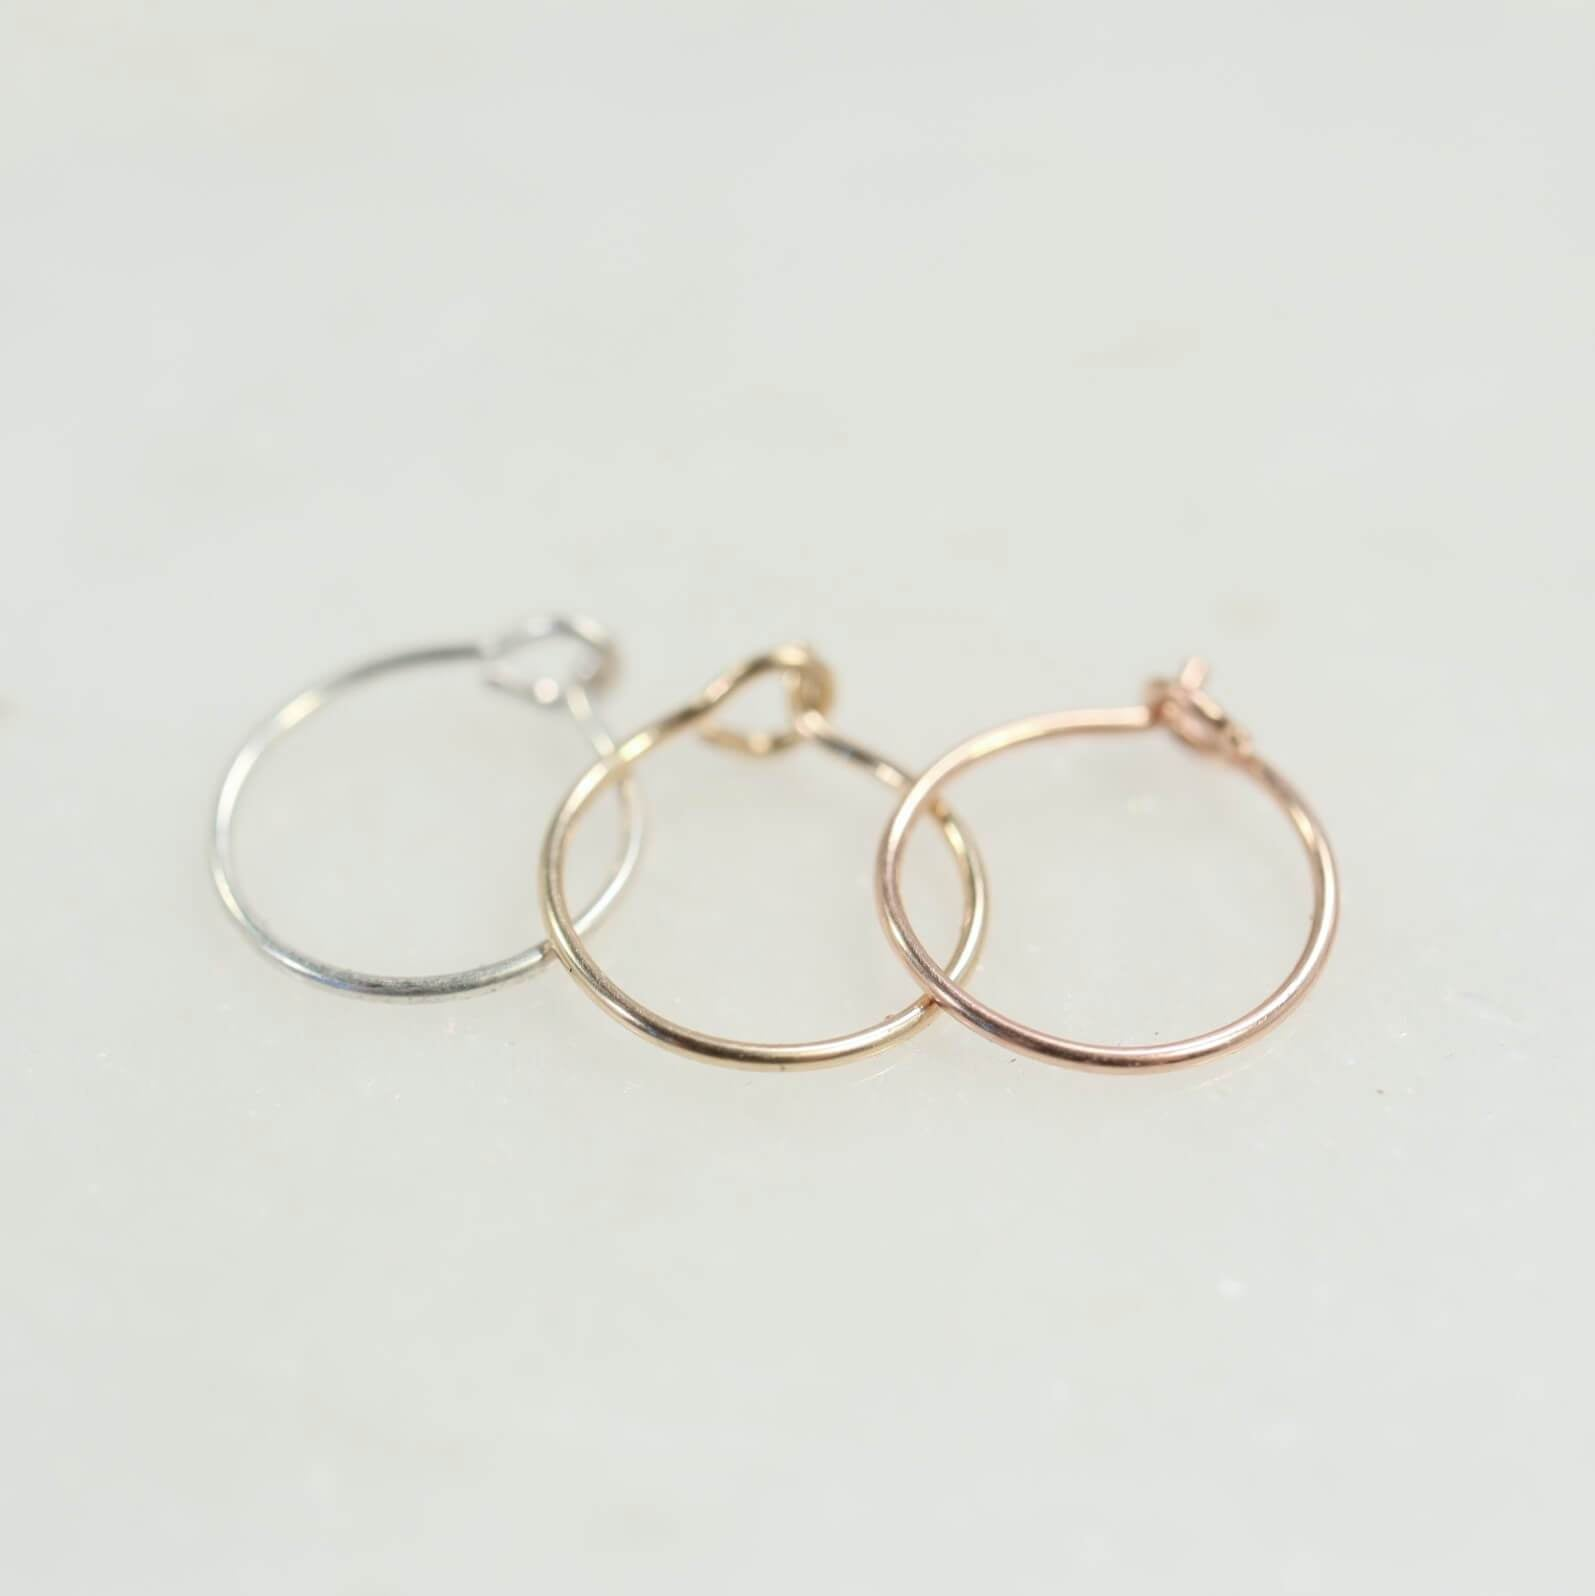 Super Thin Nose Ring Plain With Hook Choose Your Gauge Diameter